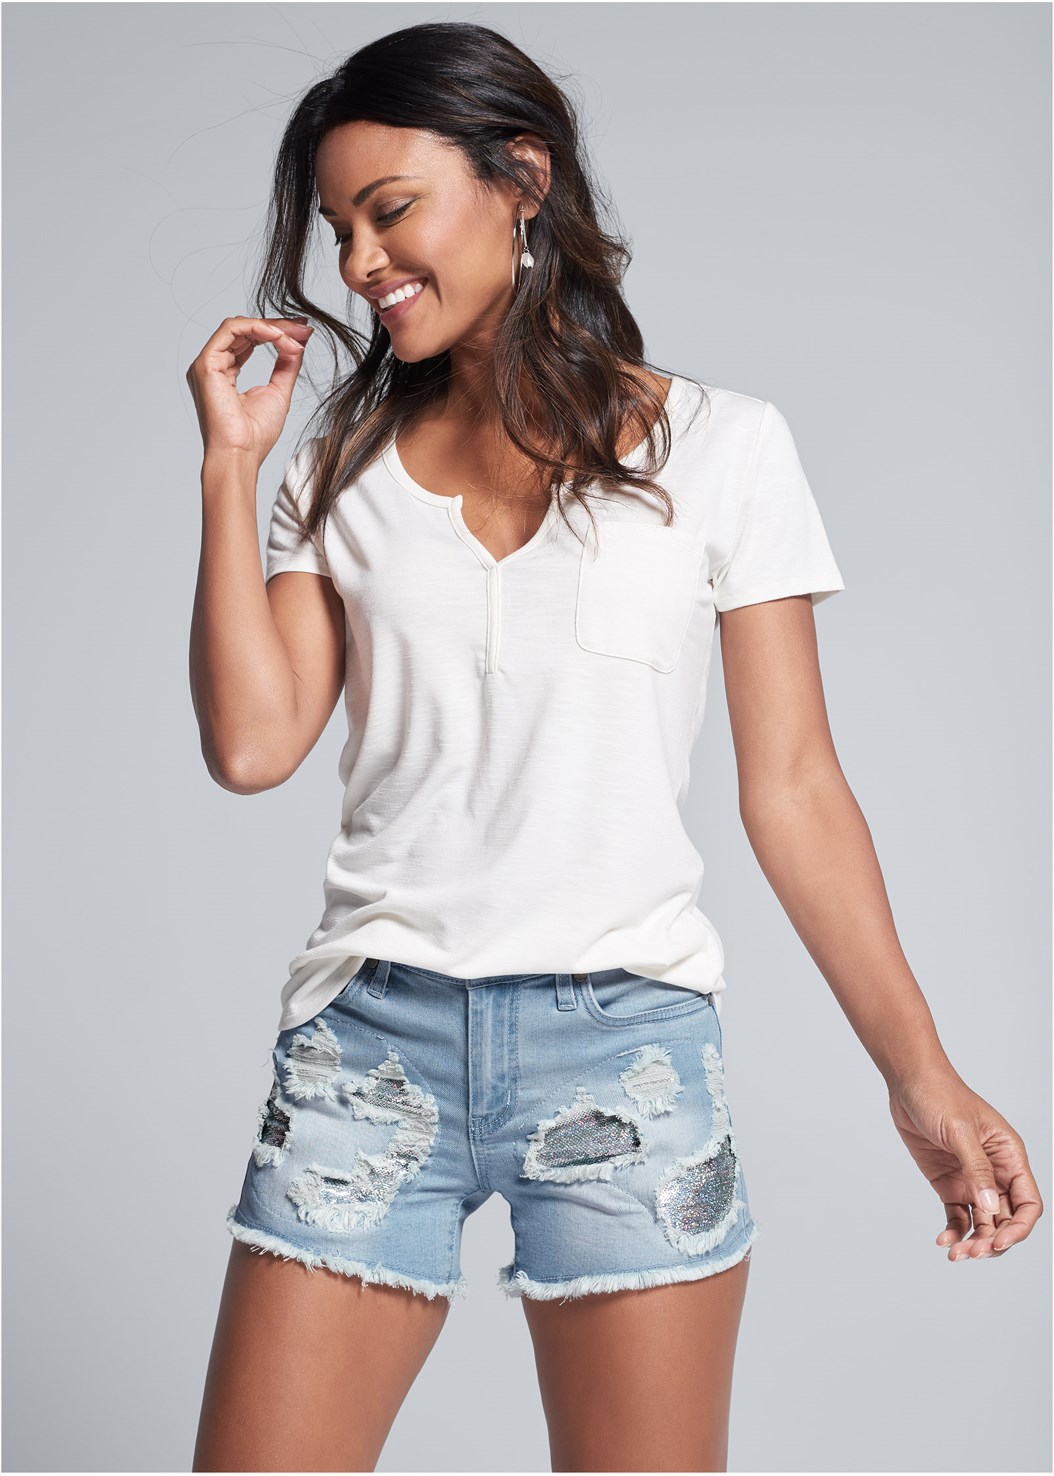 Sequin Patch Jean Shorts,Casual Pocket Tee